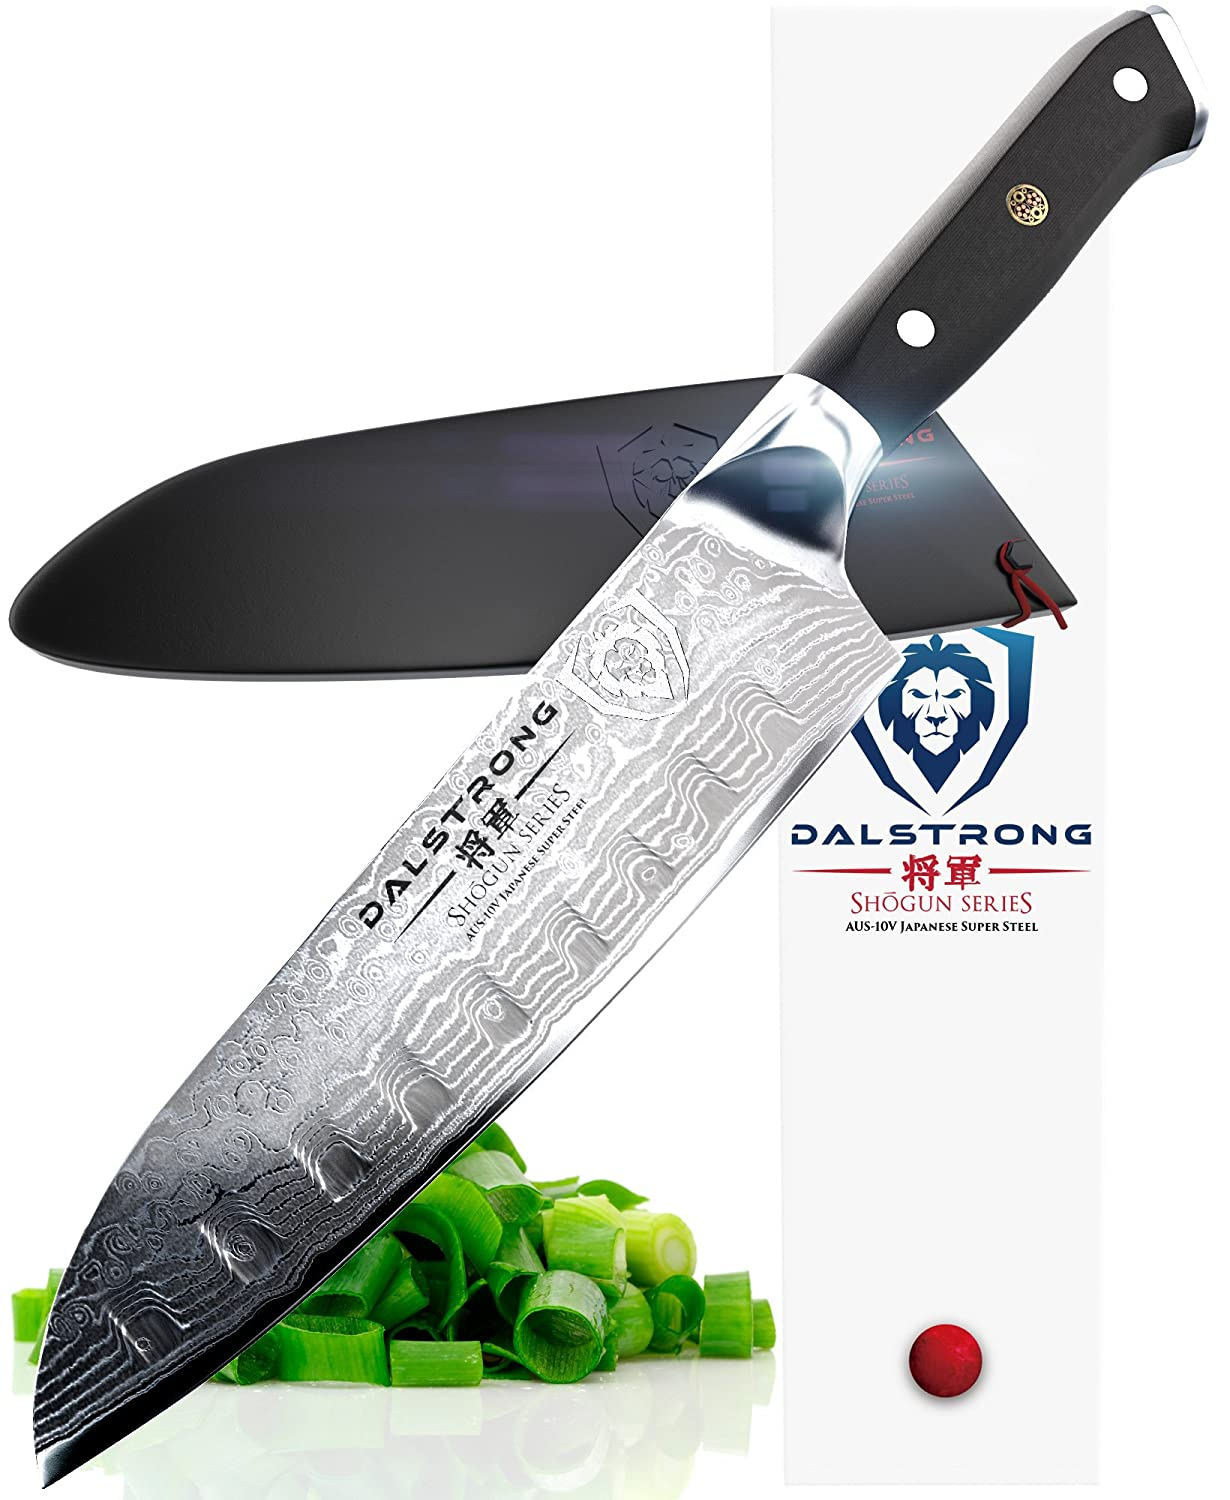 DALSTRONG Santoku Knife - Shogun Series - AUS-10V Japanese Steel 67 Layers - Vacuum Treated - 7